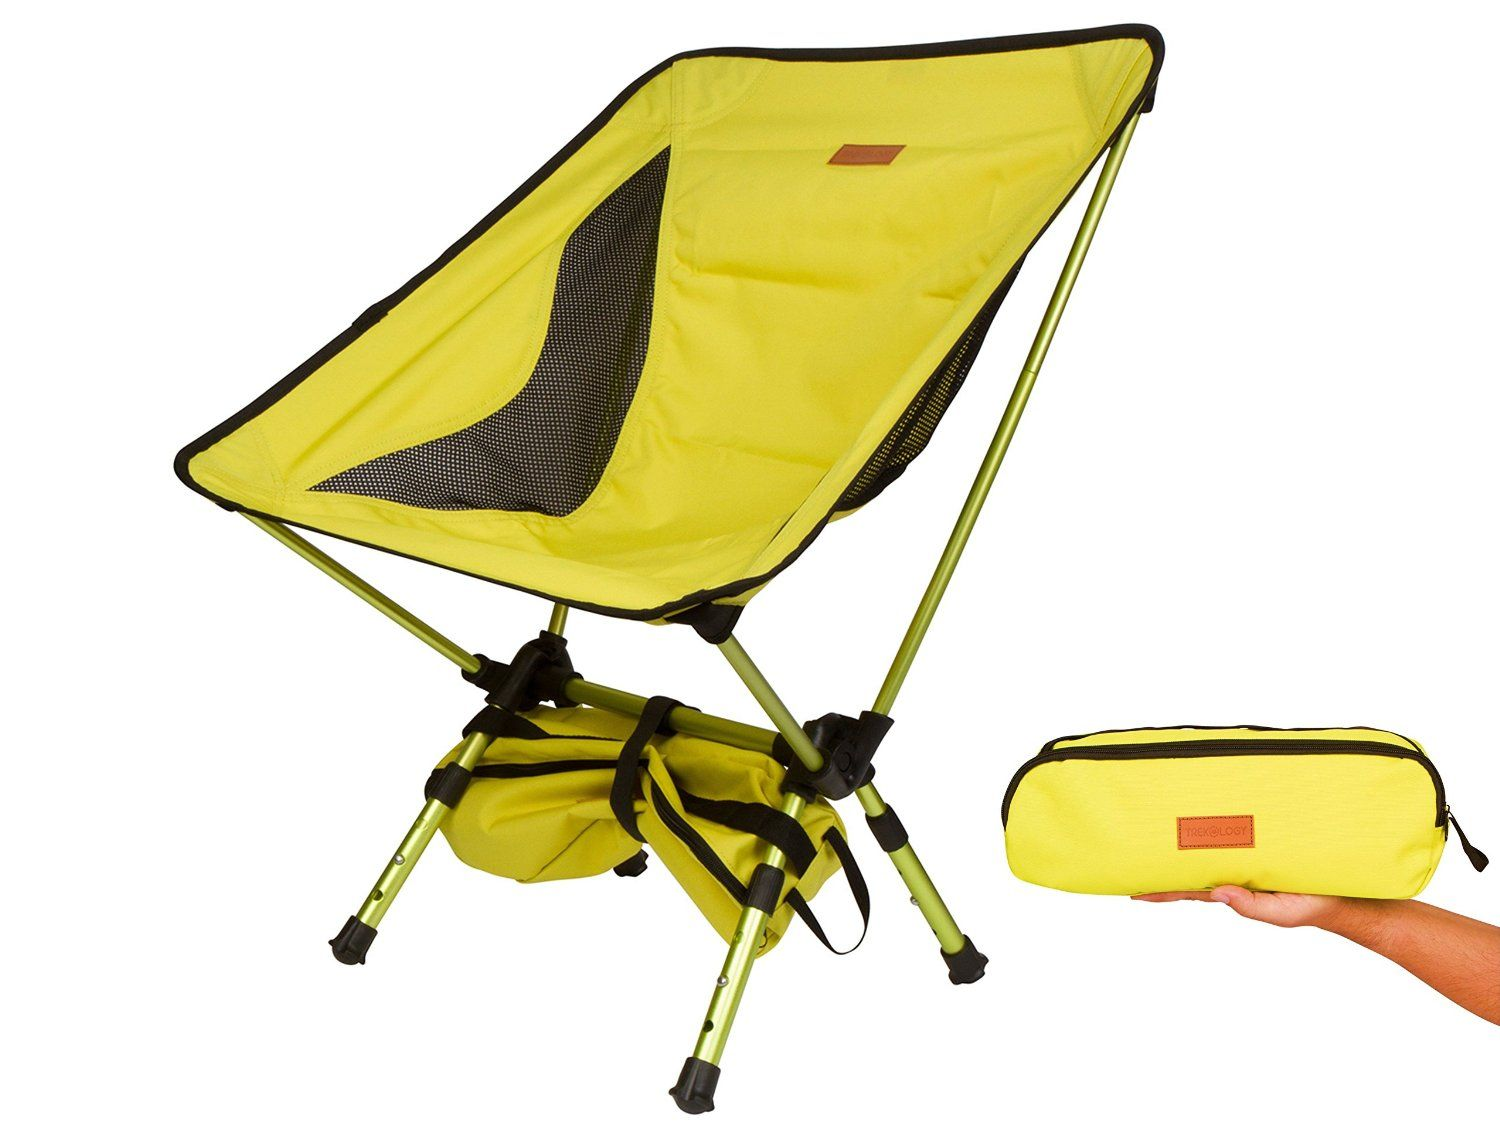 Jerry chair backpacking - Trekology Compact Portable Camping Chair With Adjustable Height Ultralight Backpacking Chair In A Bag For